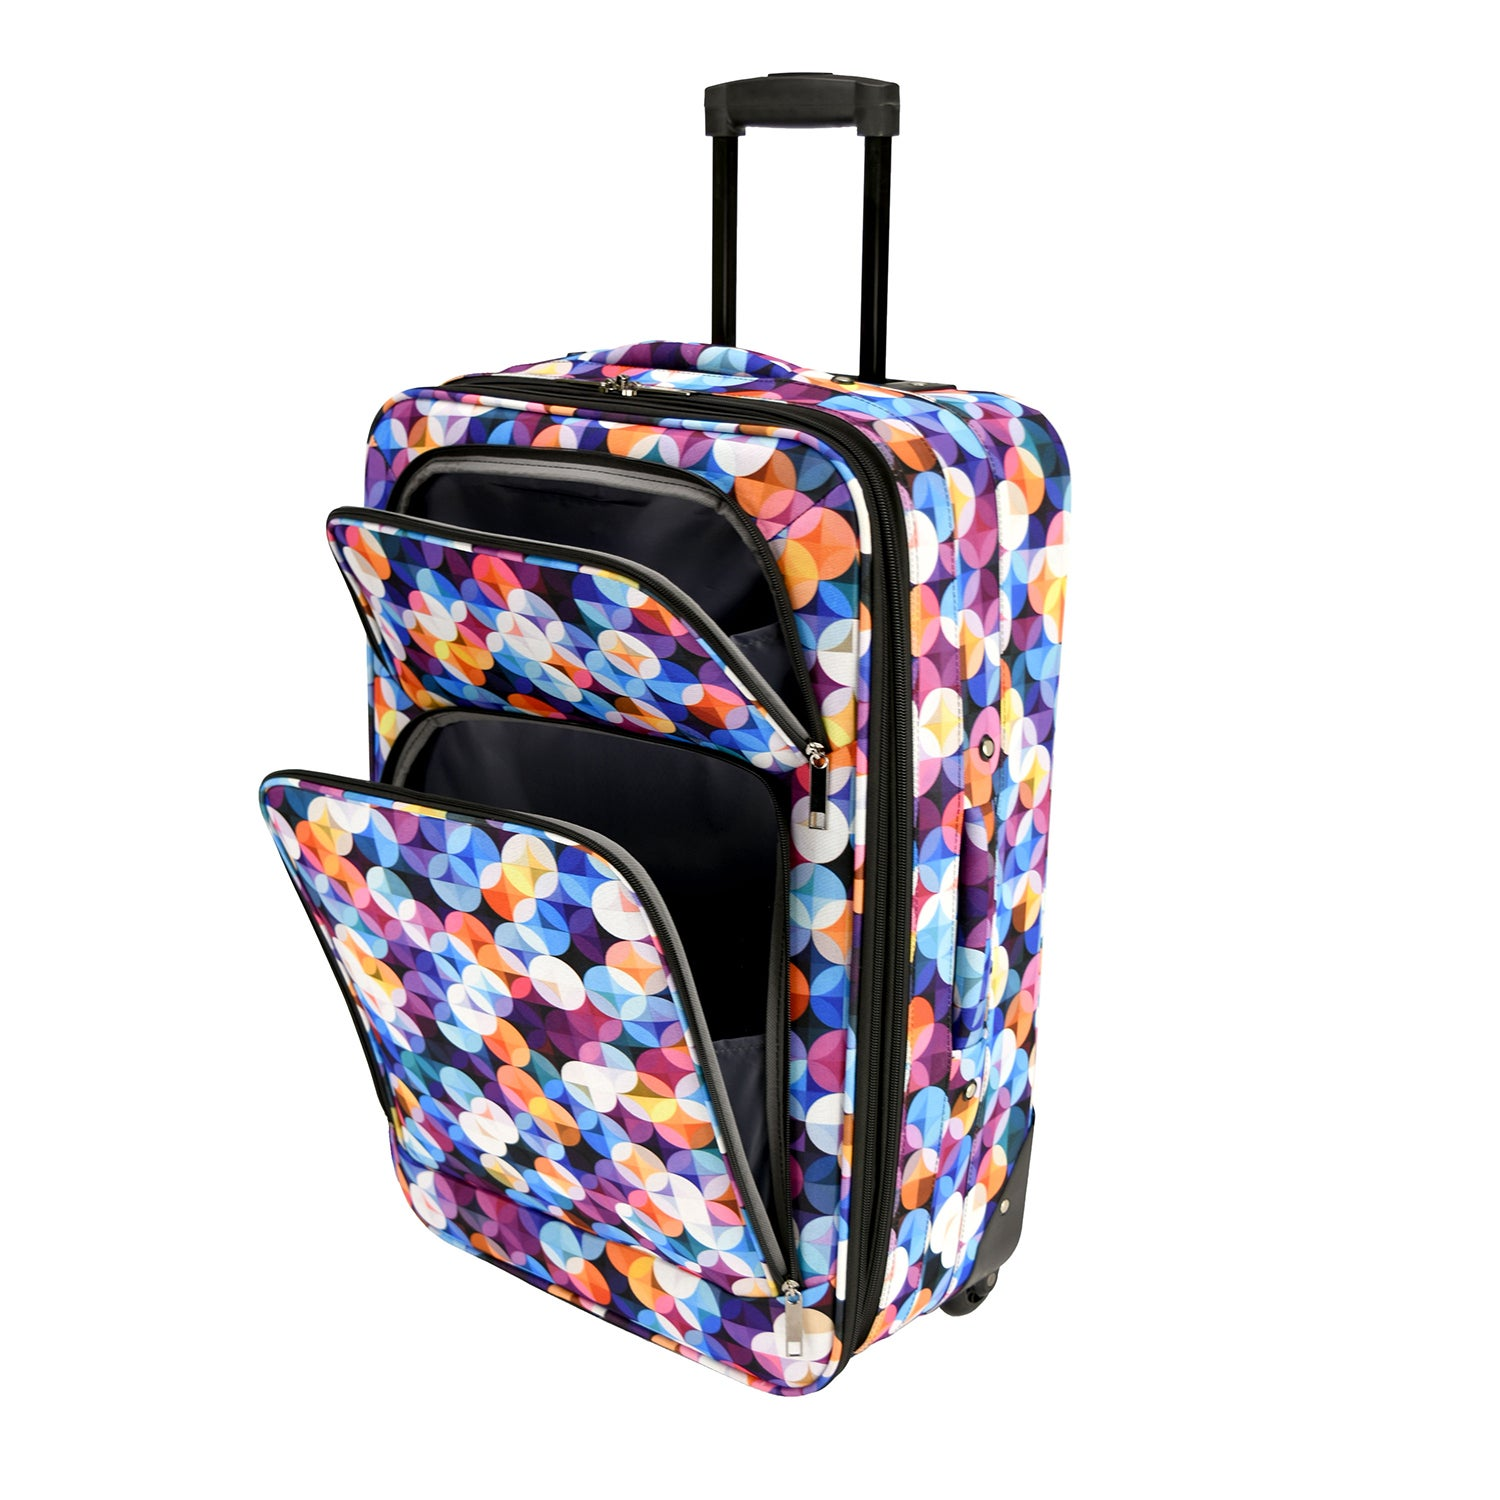 Shop Elite Luggage Gem Bubbles 20 Inch Expandable Softside Carry On Rolling Suitcase